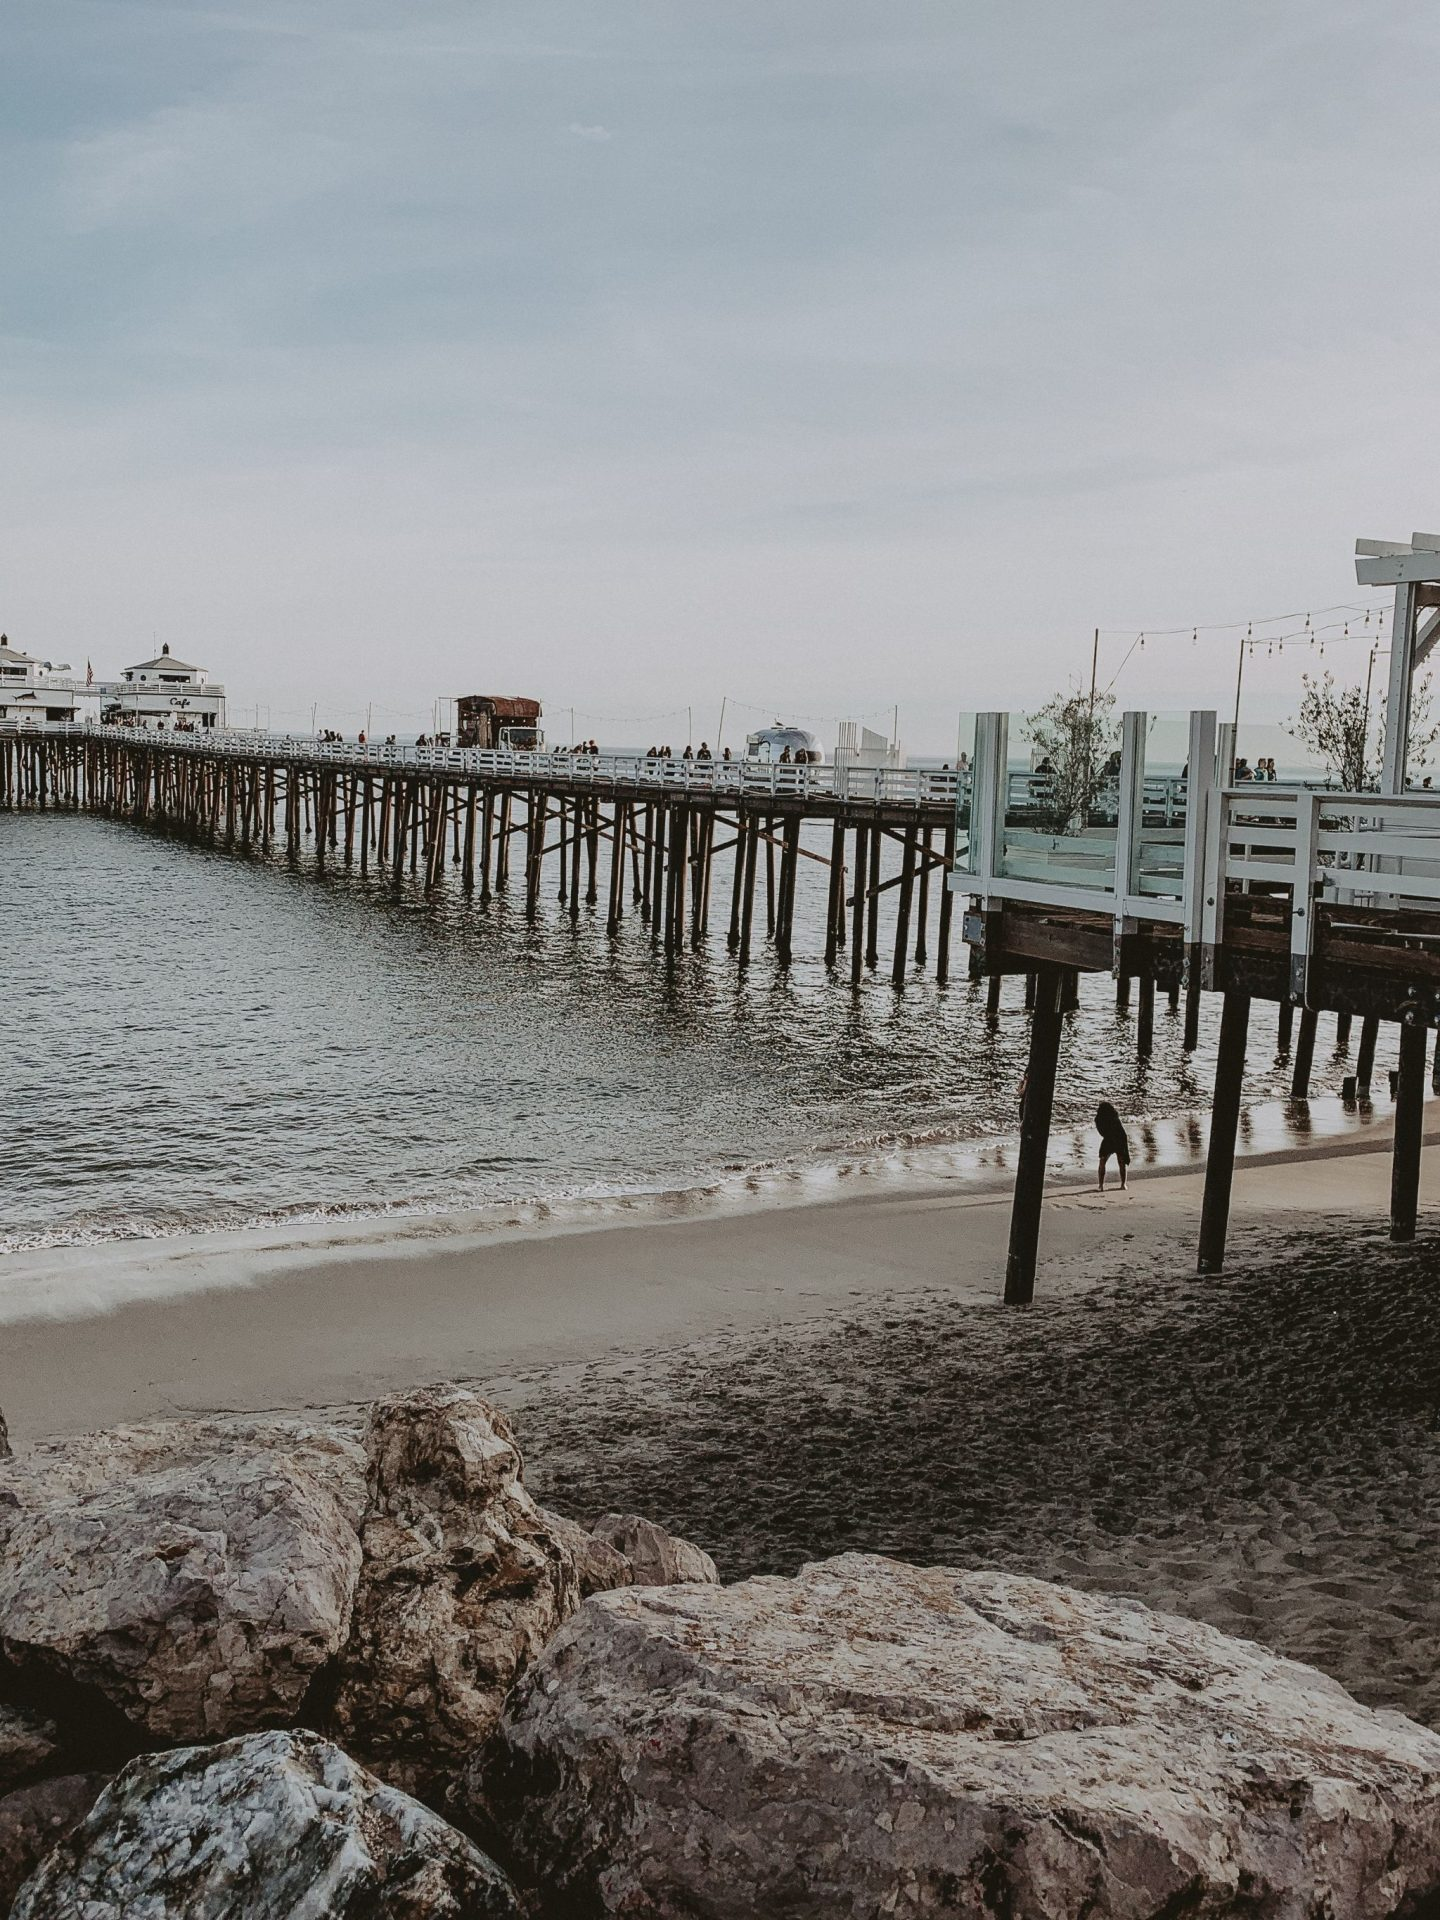 malibu pier instagram blog fashion cathclaire